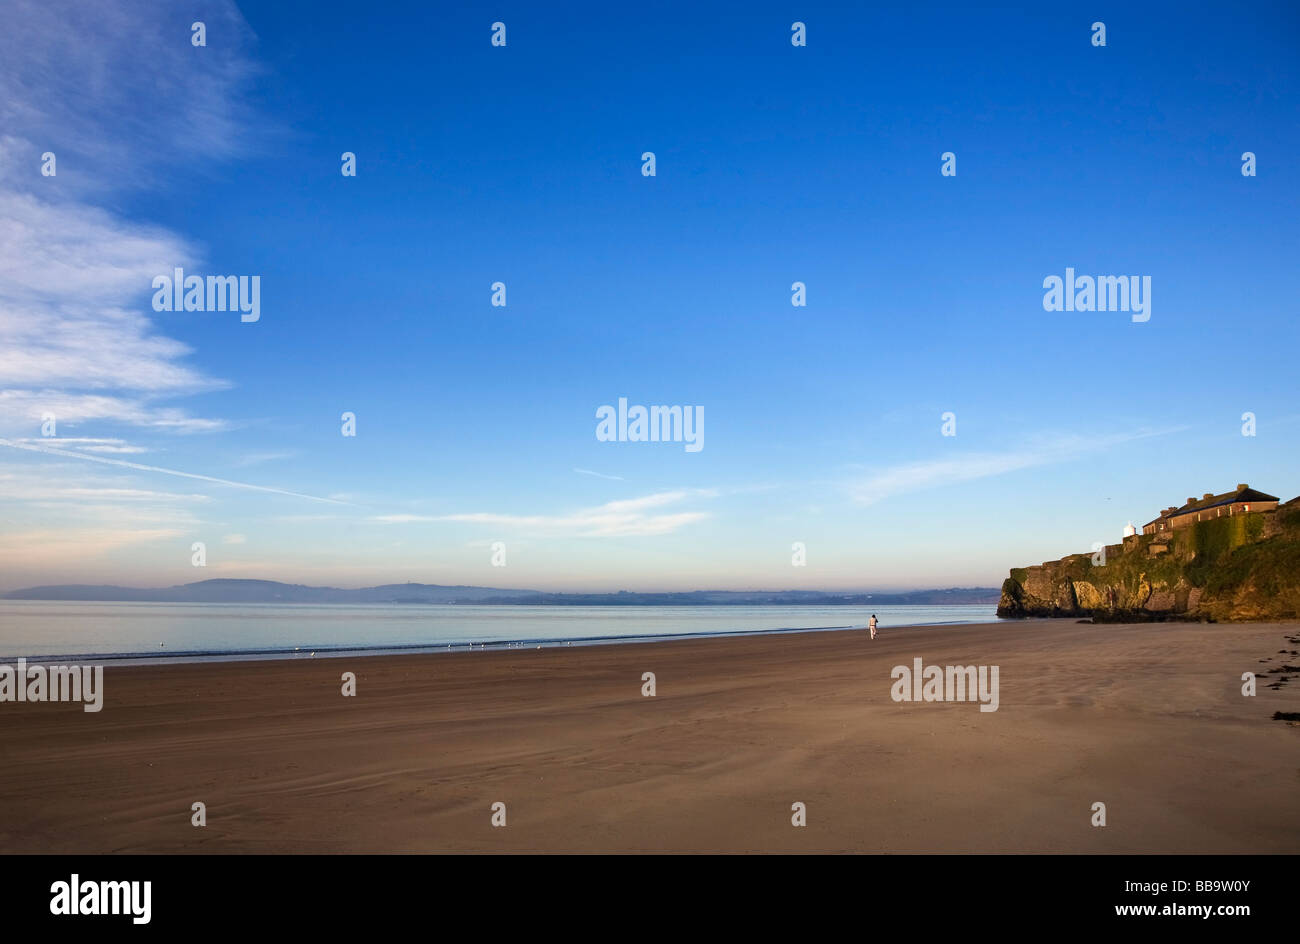 Early morning walker on Arthurstown Beach, Overlooking Waterford Harbour, Co Wexford, Ireland - Stock Image